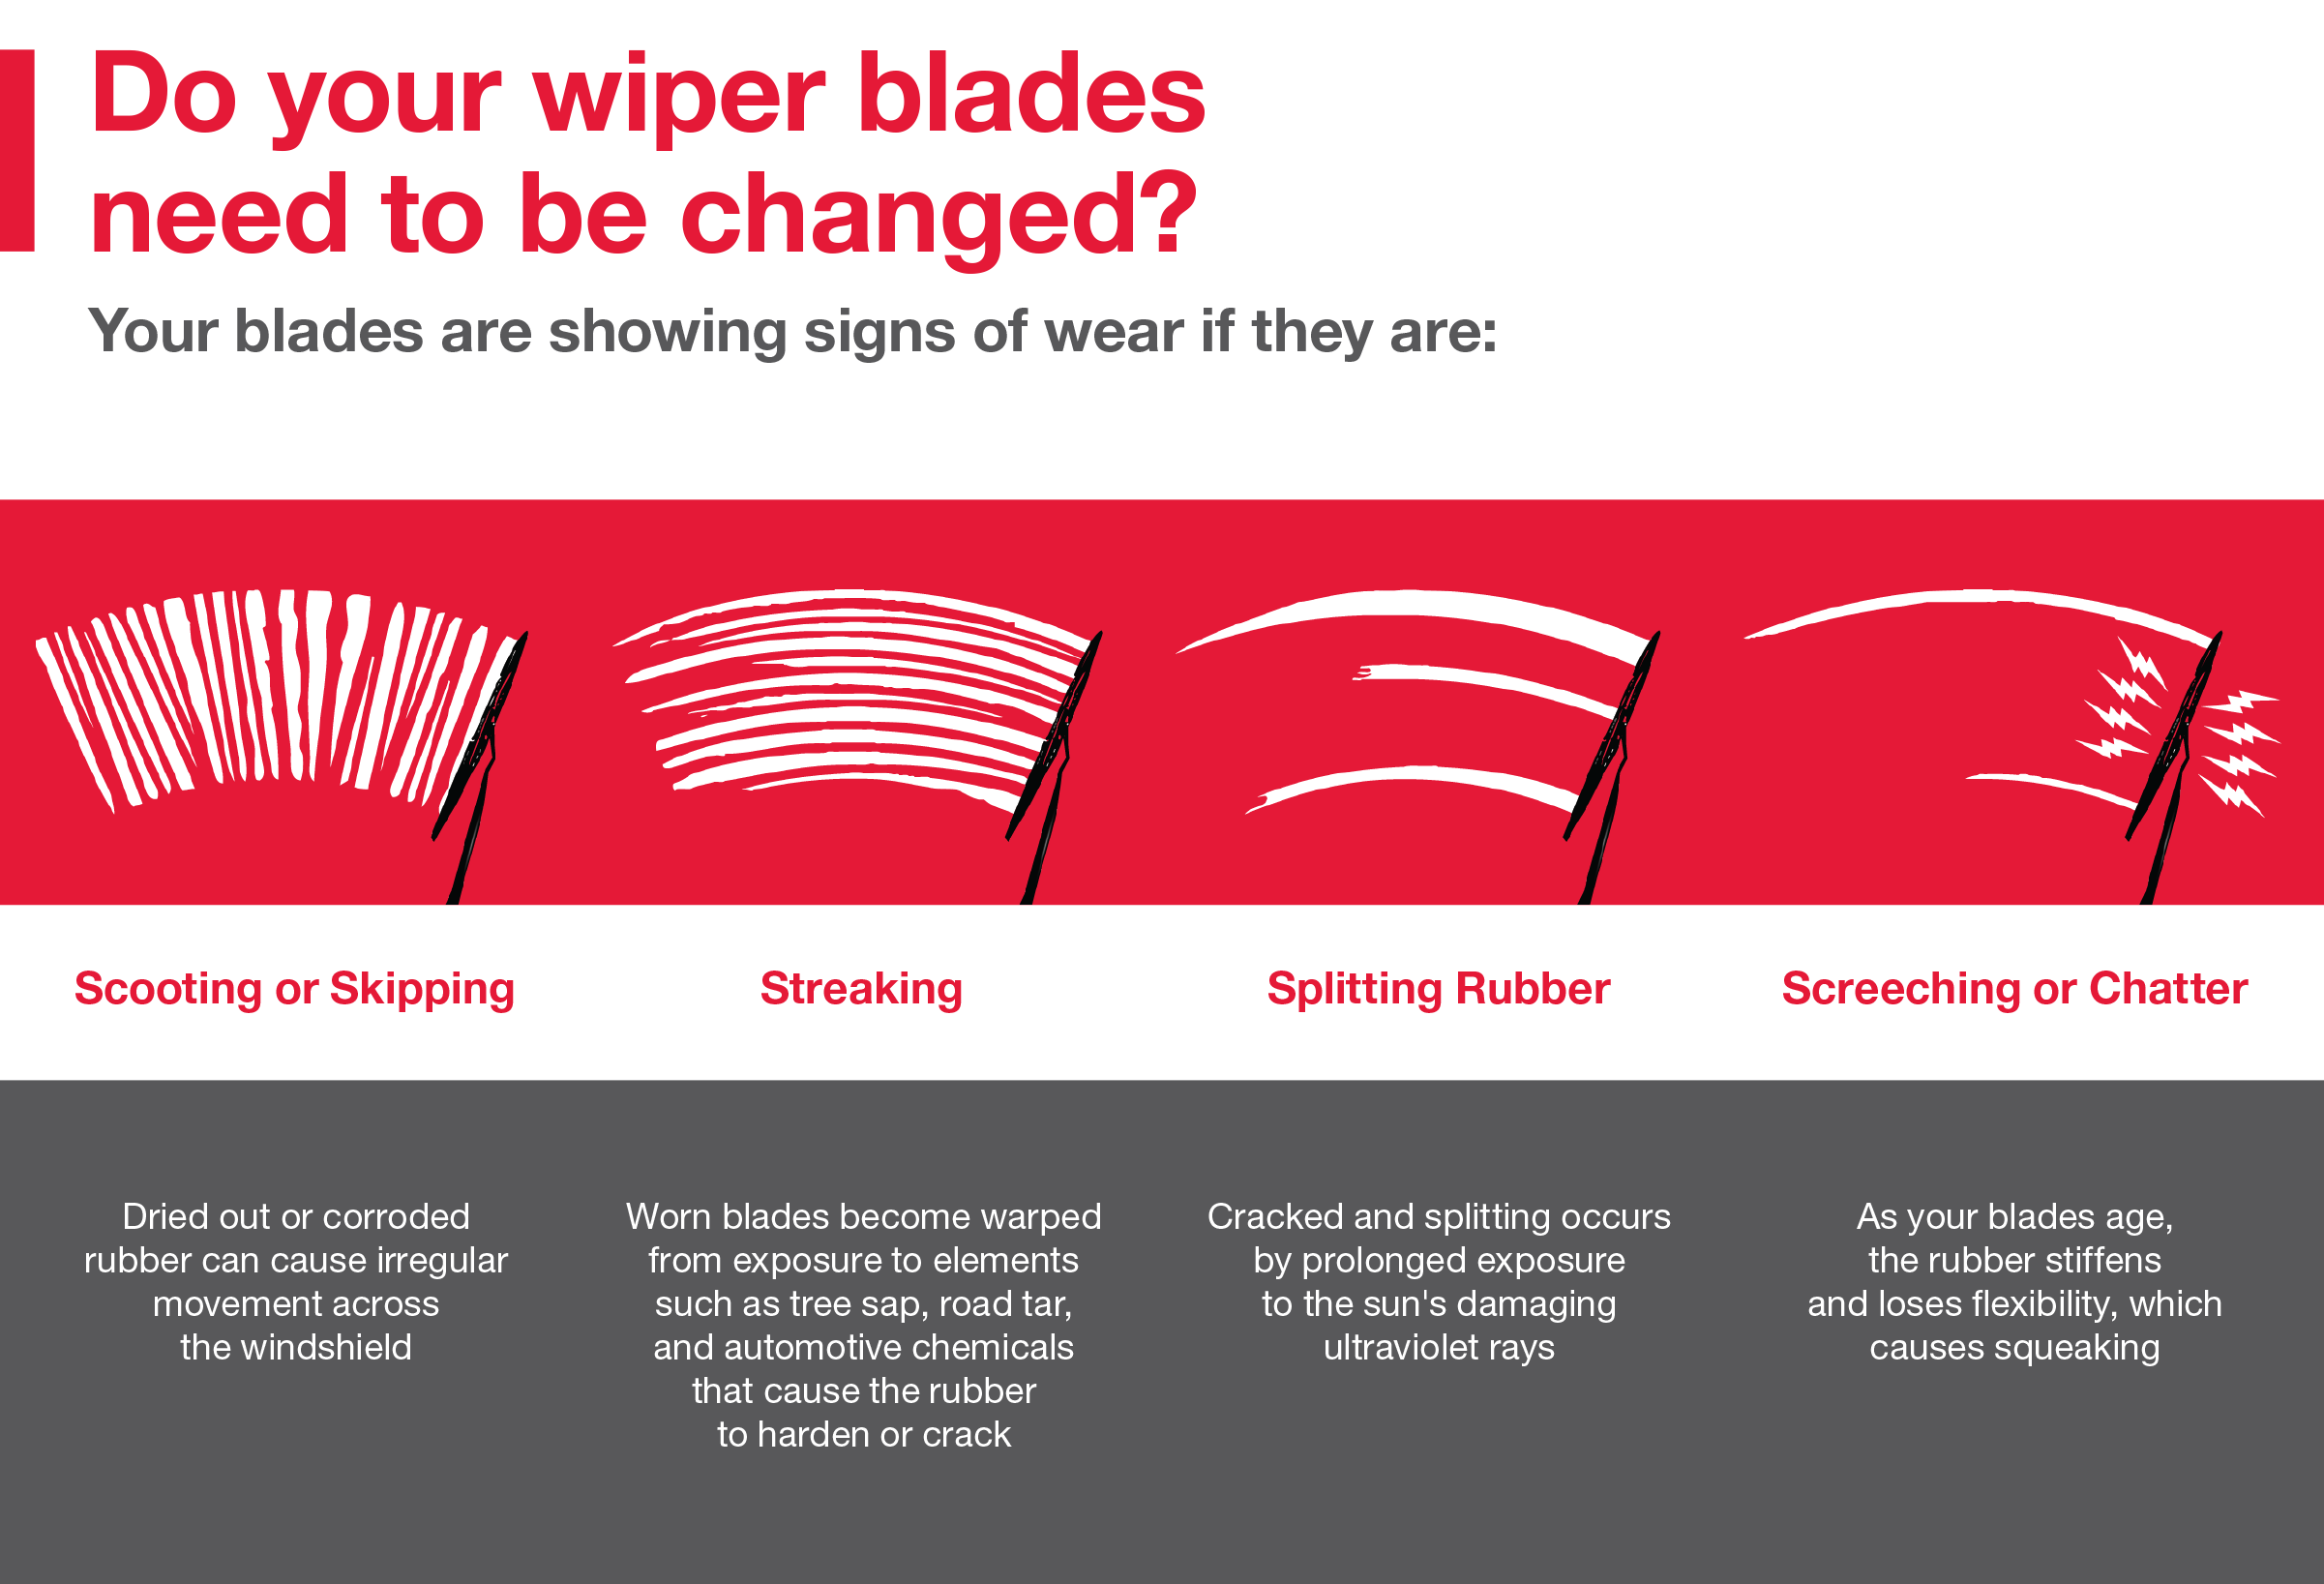 Do your wiper blades need to be changed? Call your local dealer for more info: (740) 654-3943